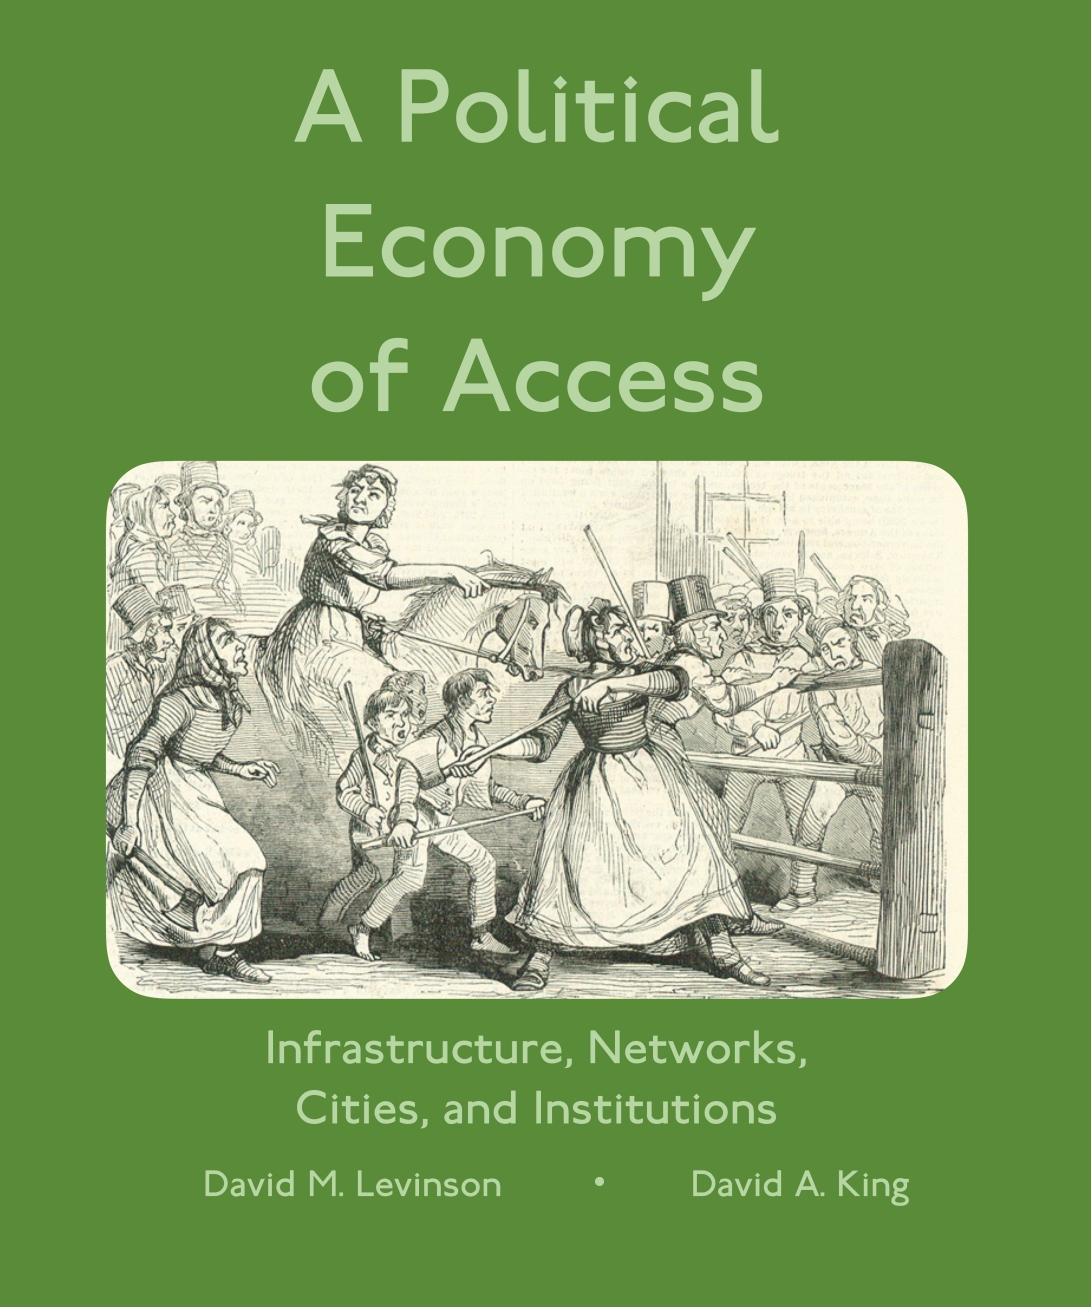 A Political Economy of Access: Infrastructure, Networks, Cities, and Institutions by David M. Levinson and David A. King